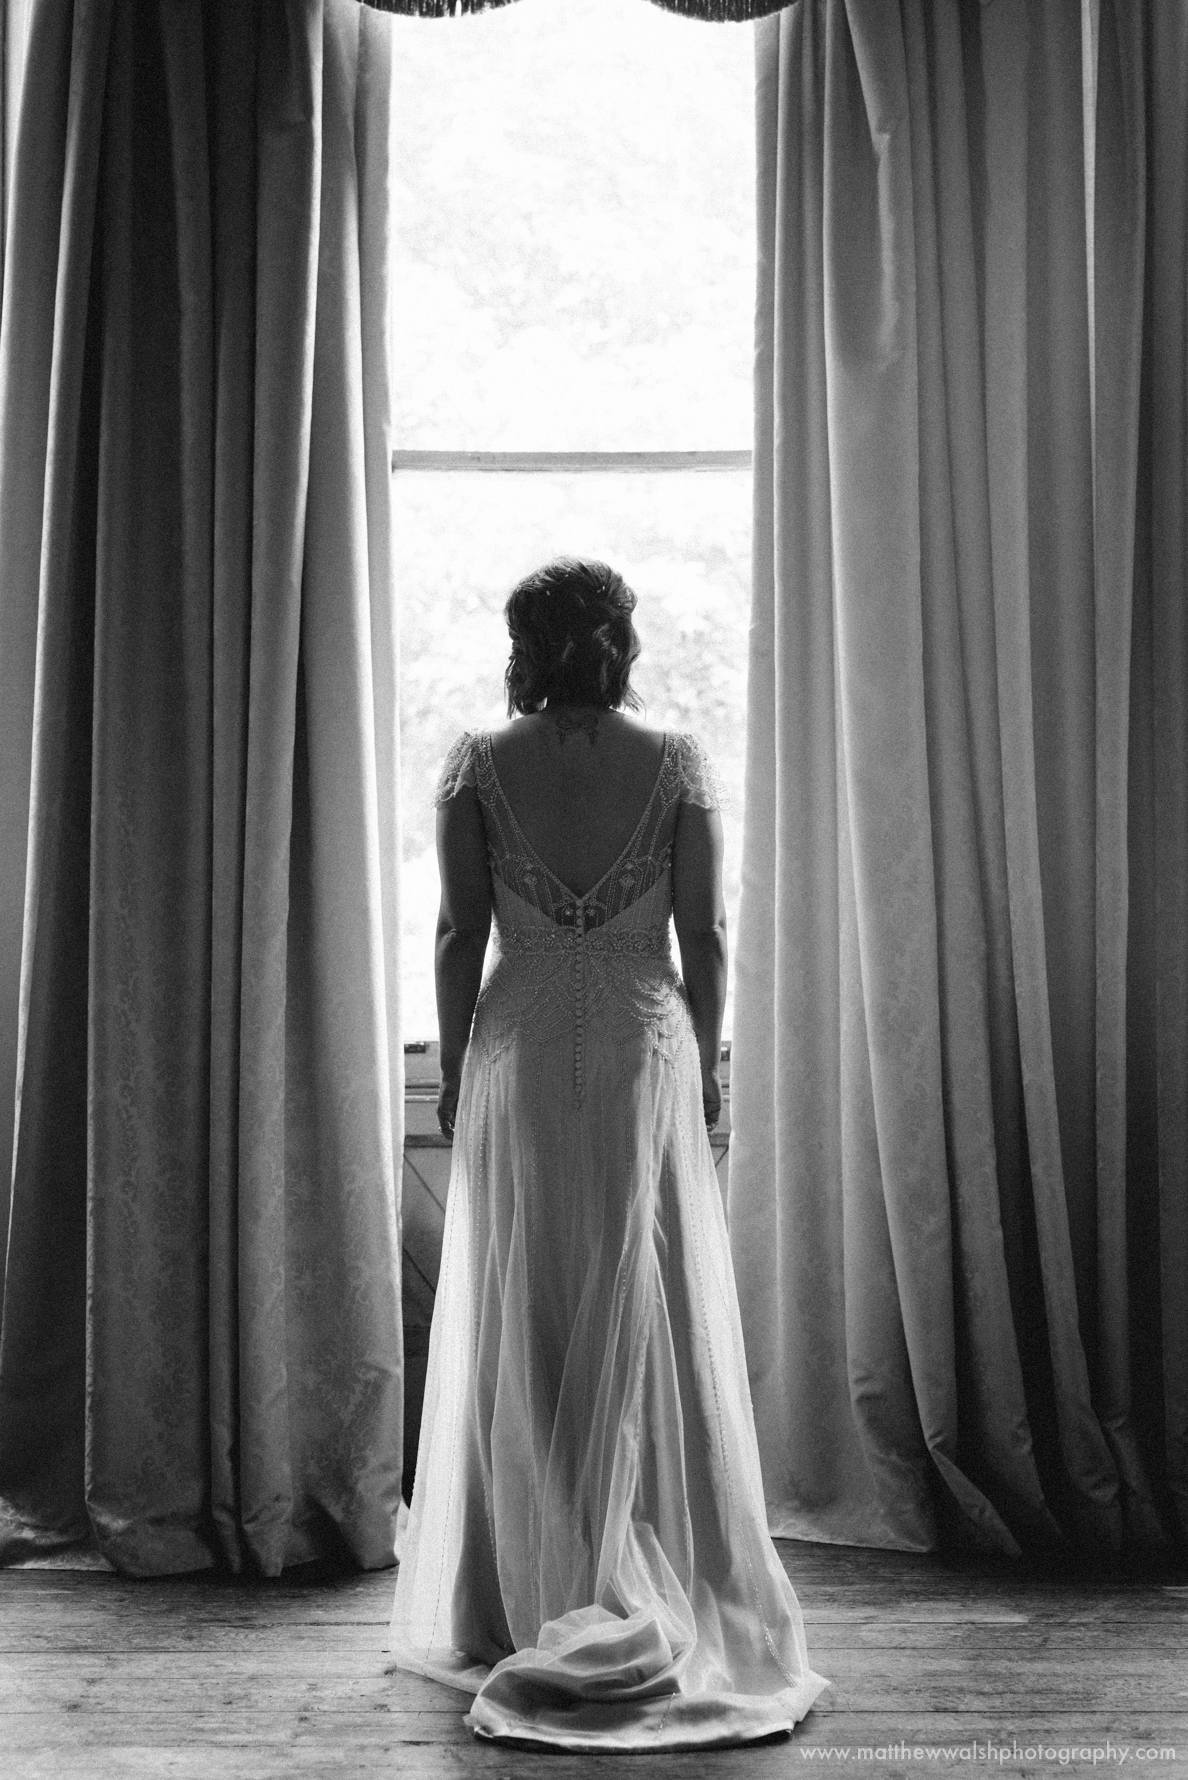 A detailed look at the back of the brides dress